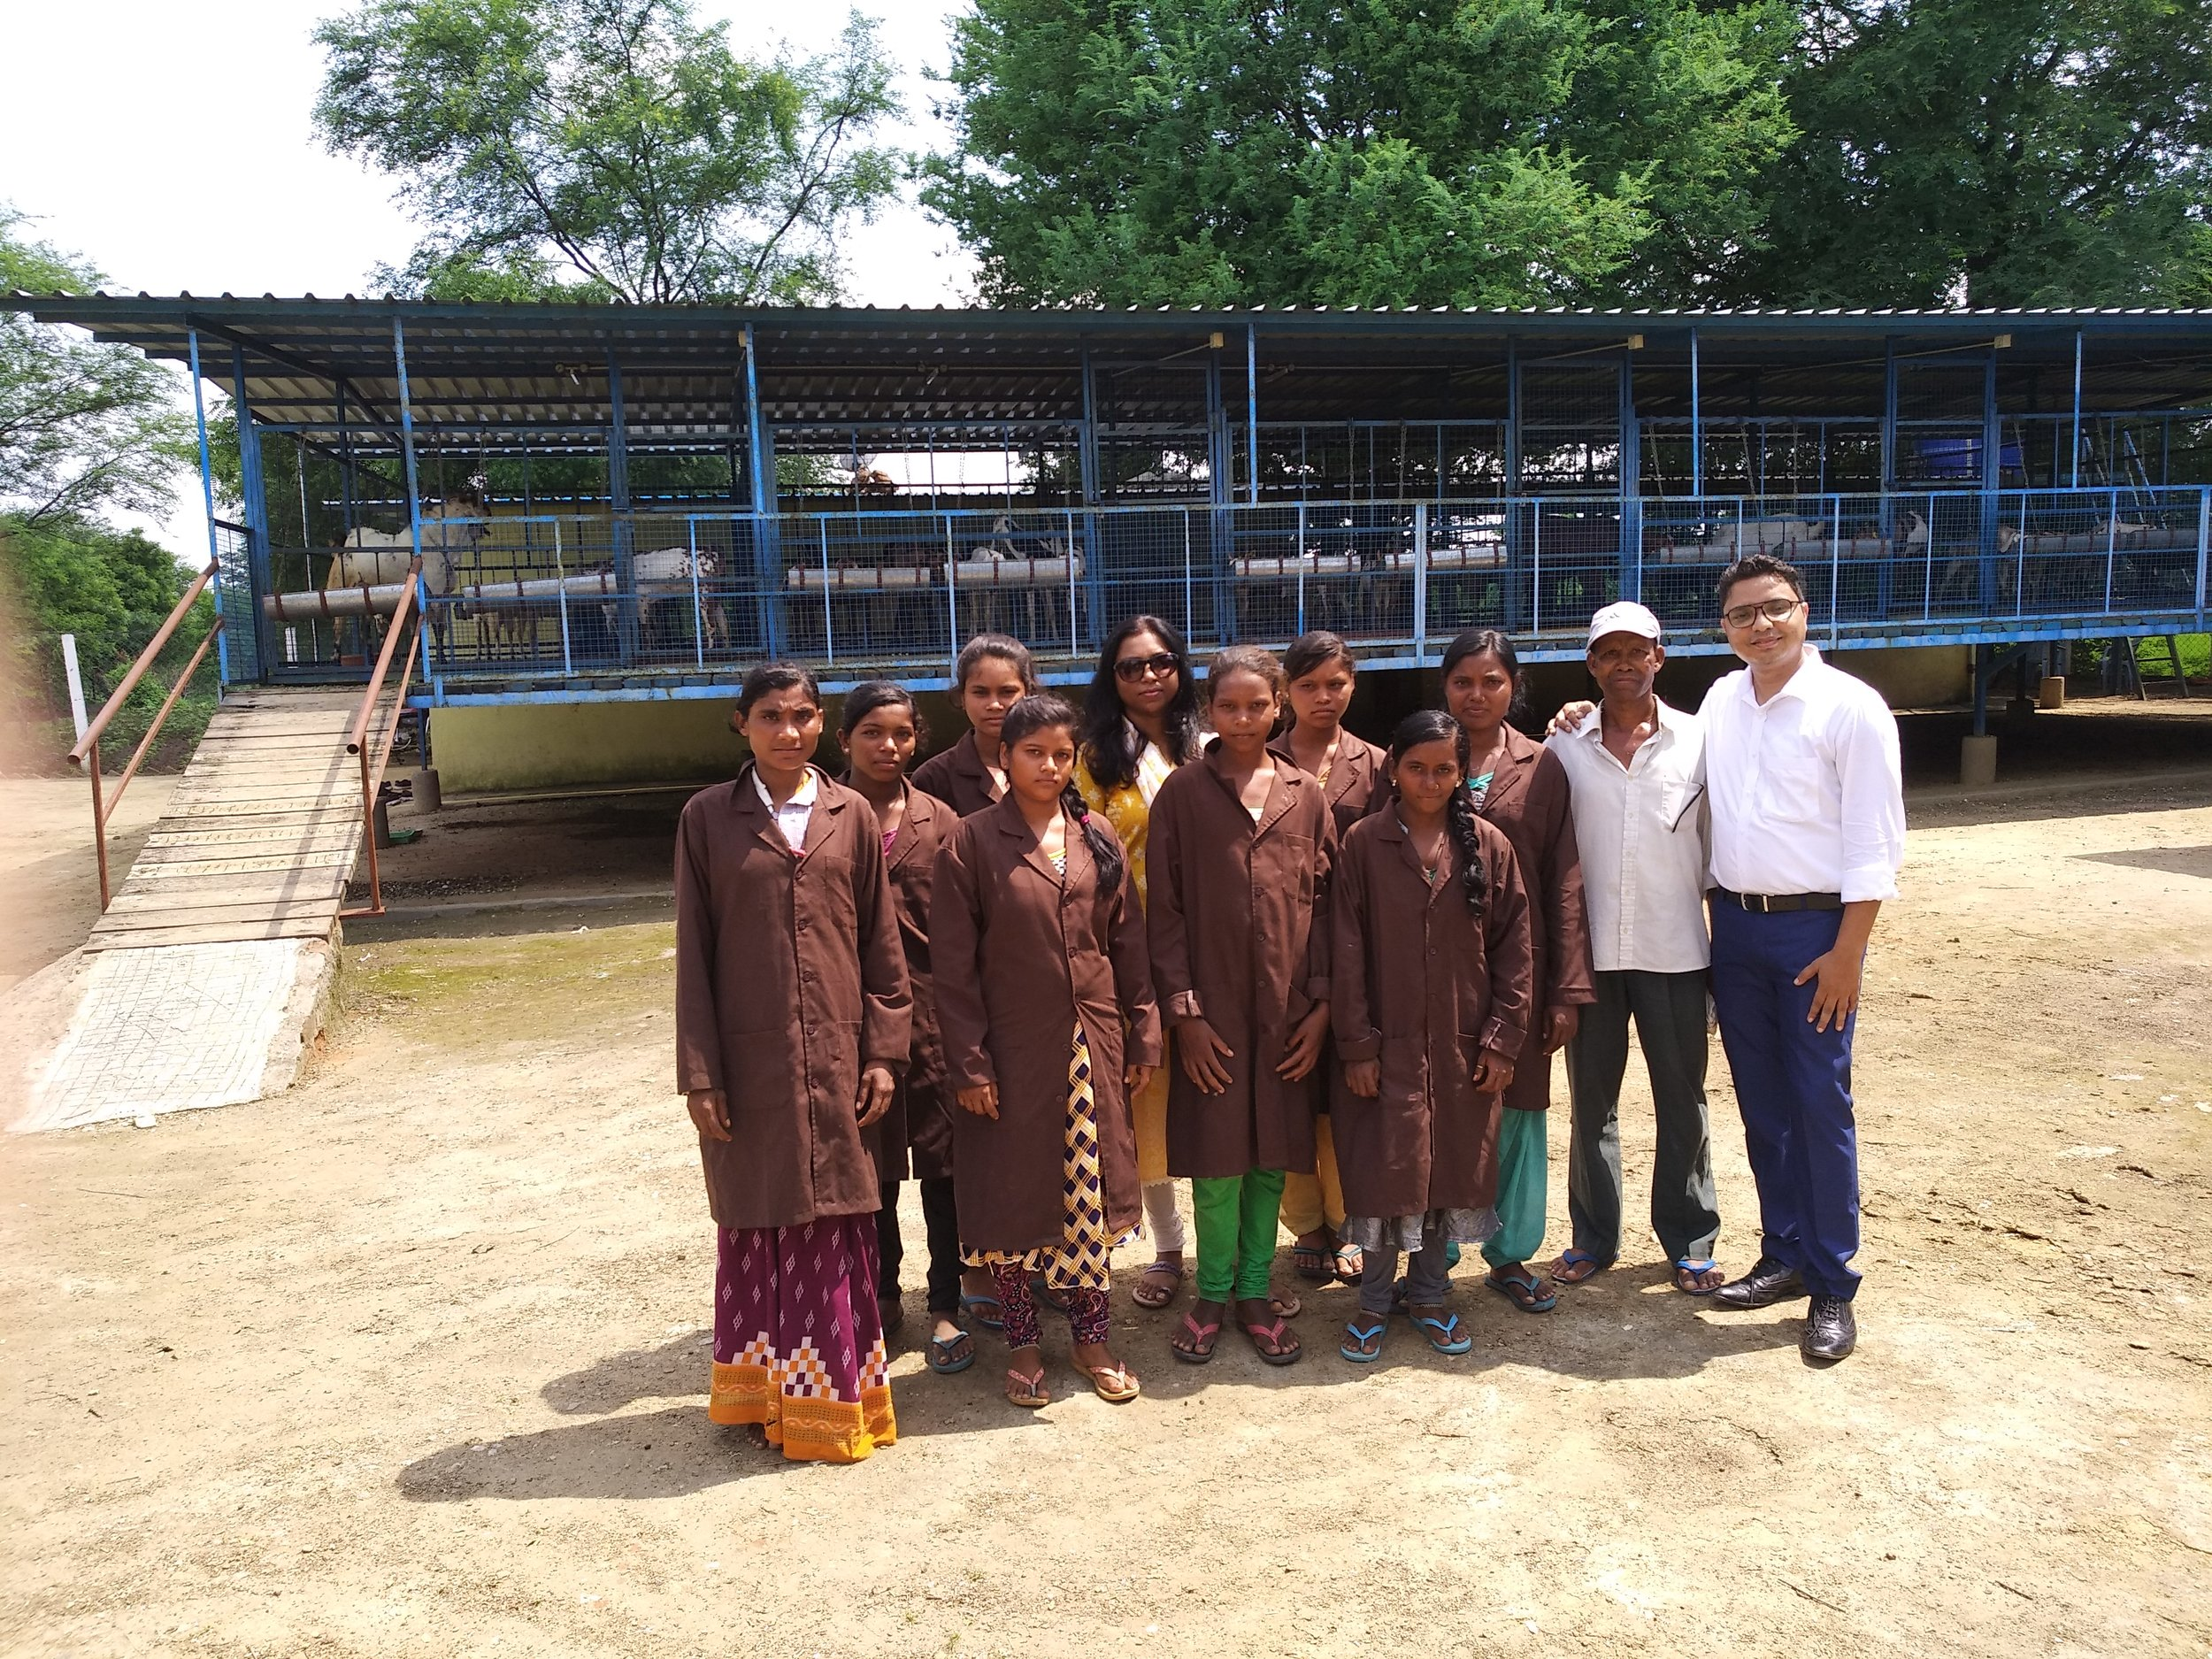 Jayanti (back, center) with a group of Manikstu Agro jobholders in front of the company's goat shelter.